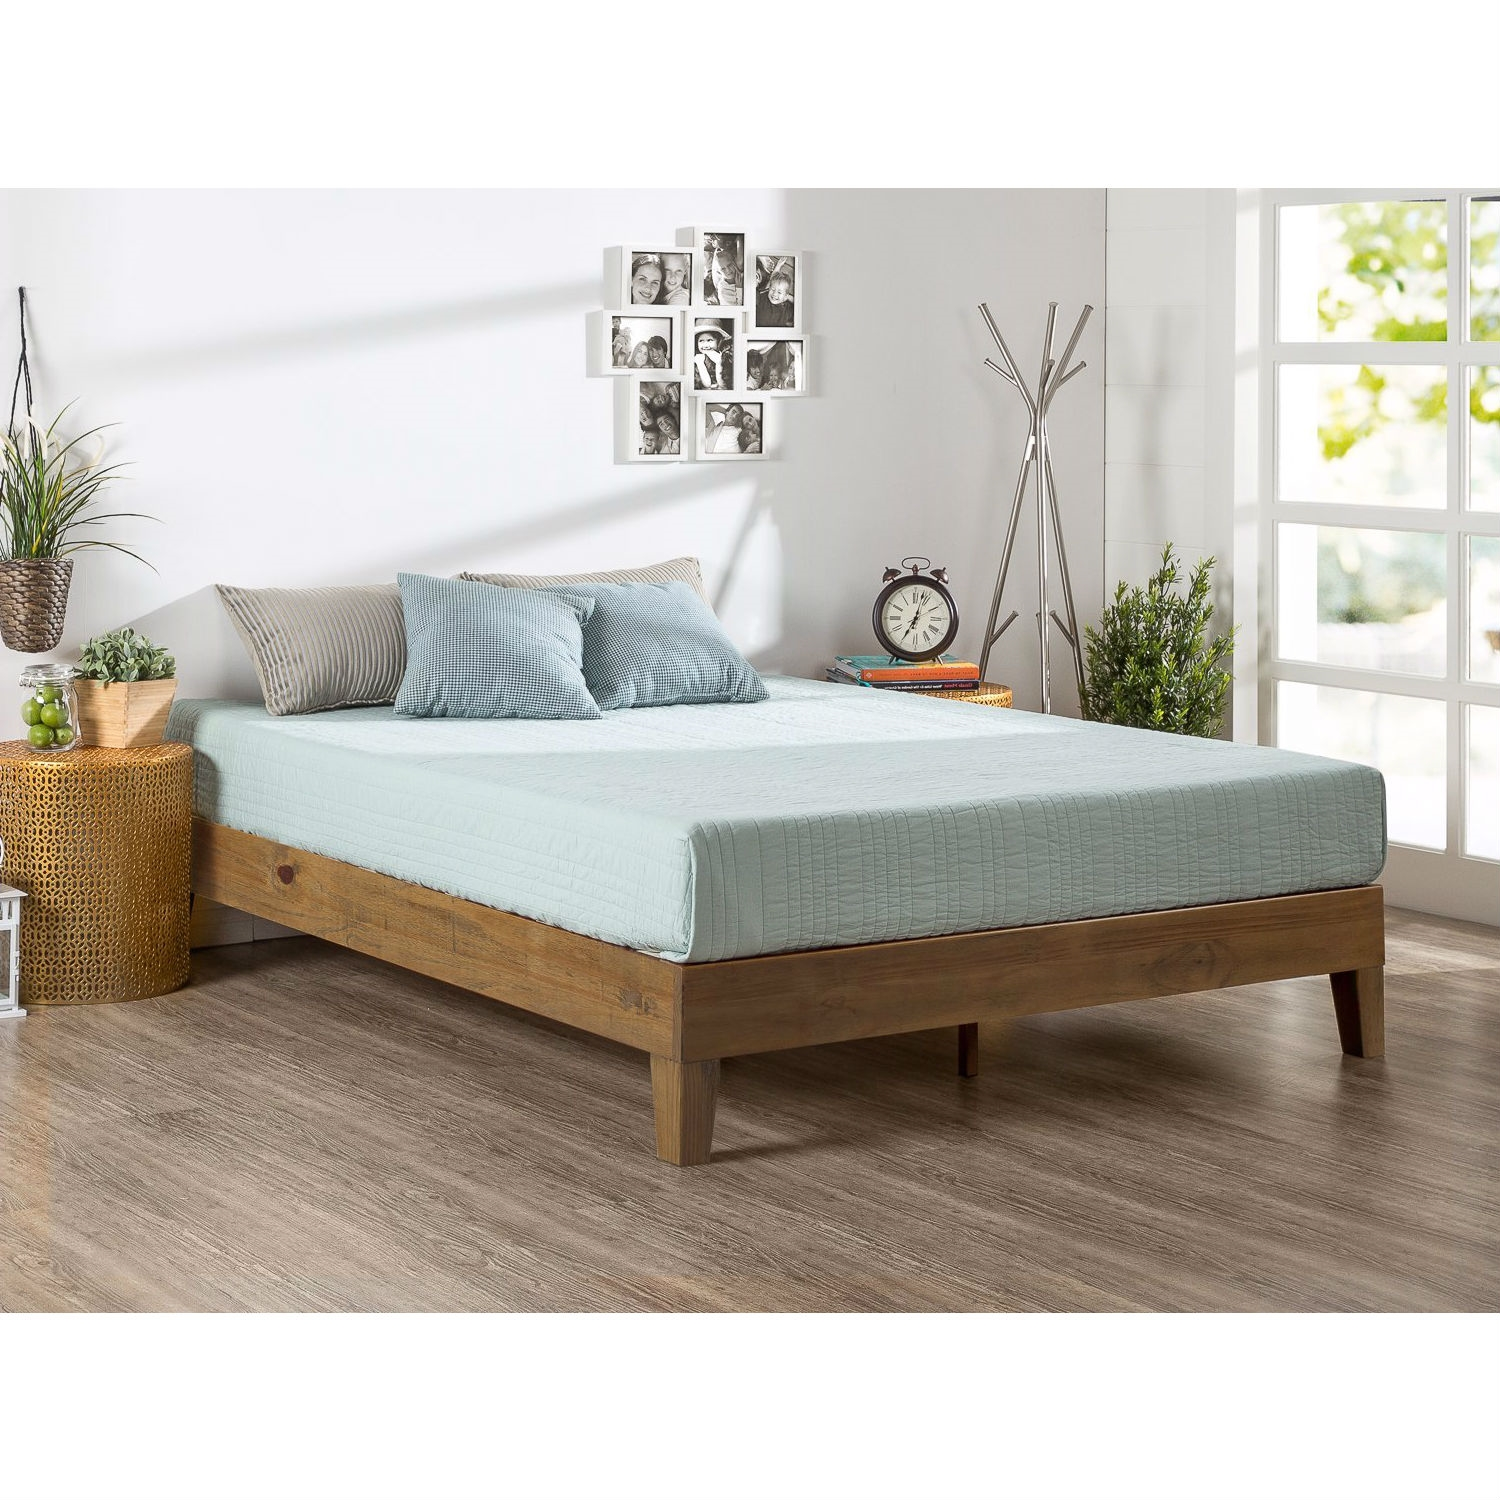 Full Size Solid Wood Low Profile Platform Bed Frame In Pine Finish Fastfurnishings Com